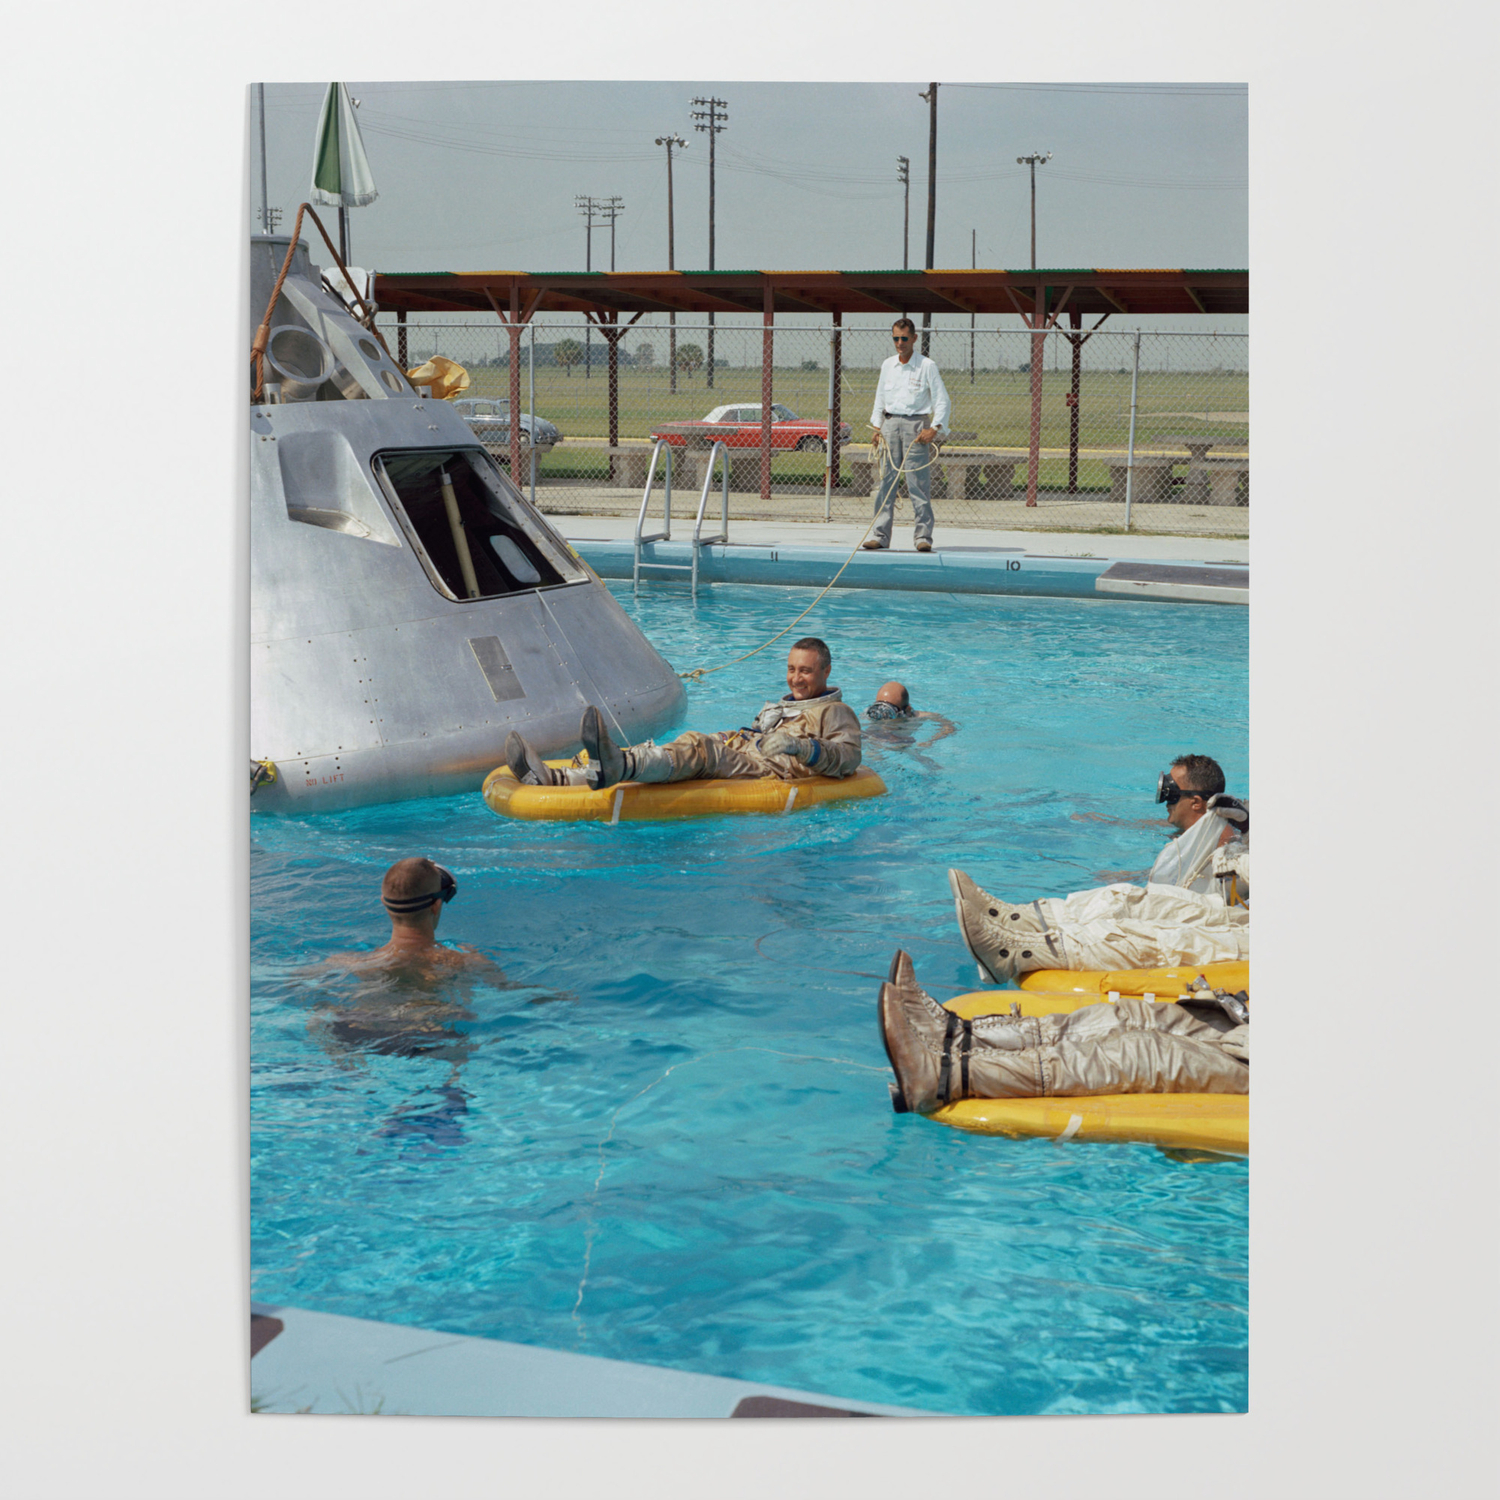 Apollo 1 - Relaxing by the Swimming Pool Poster by projectapollo